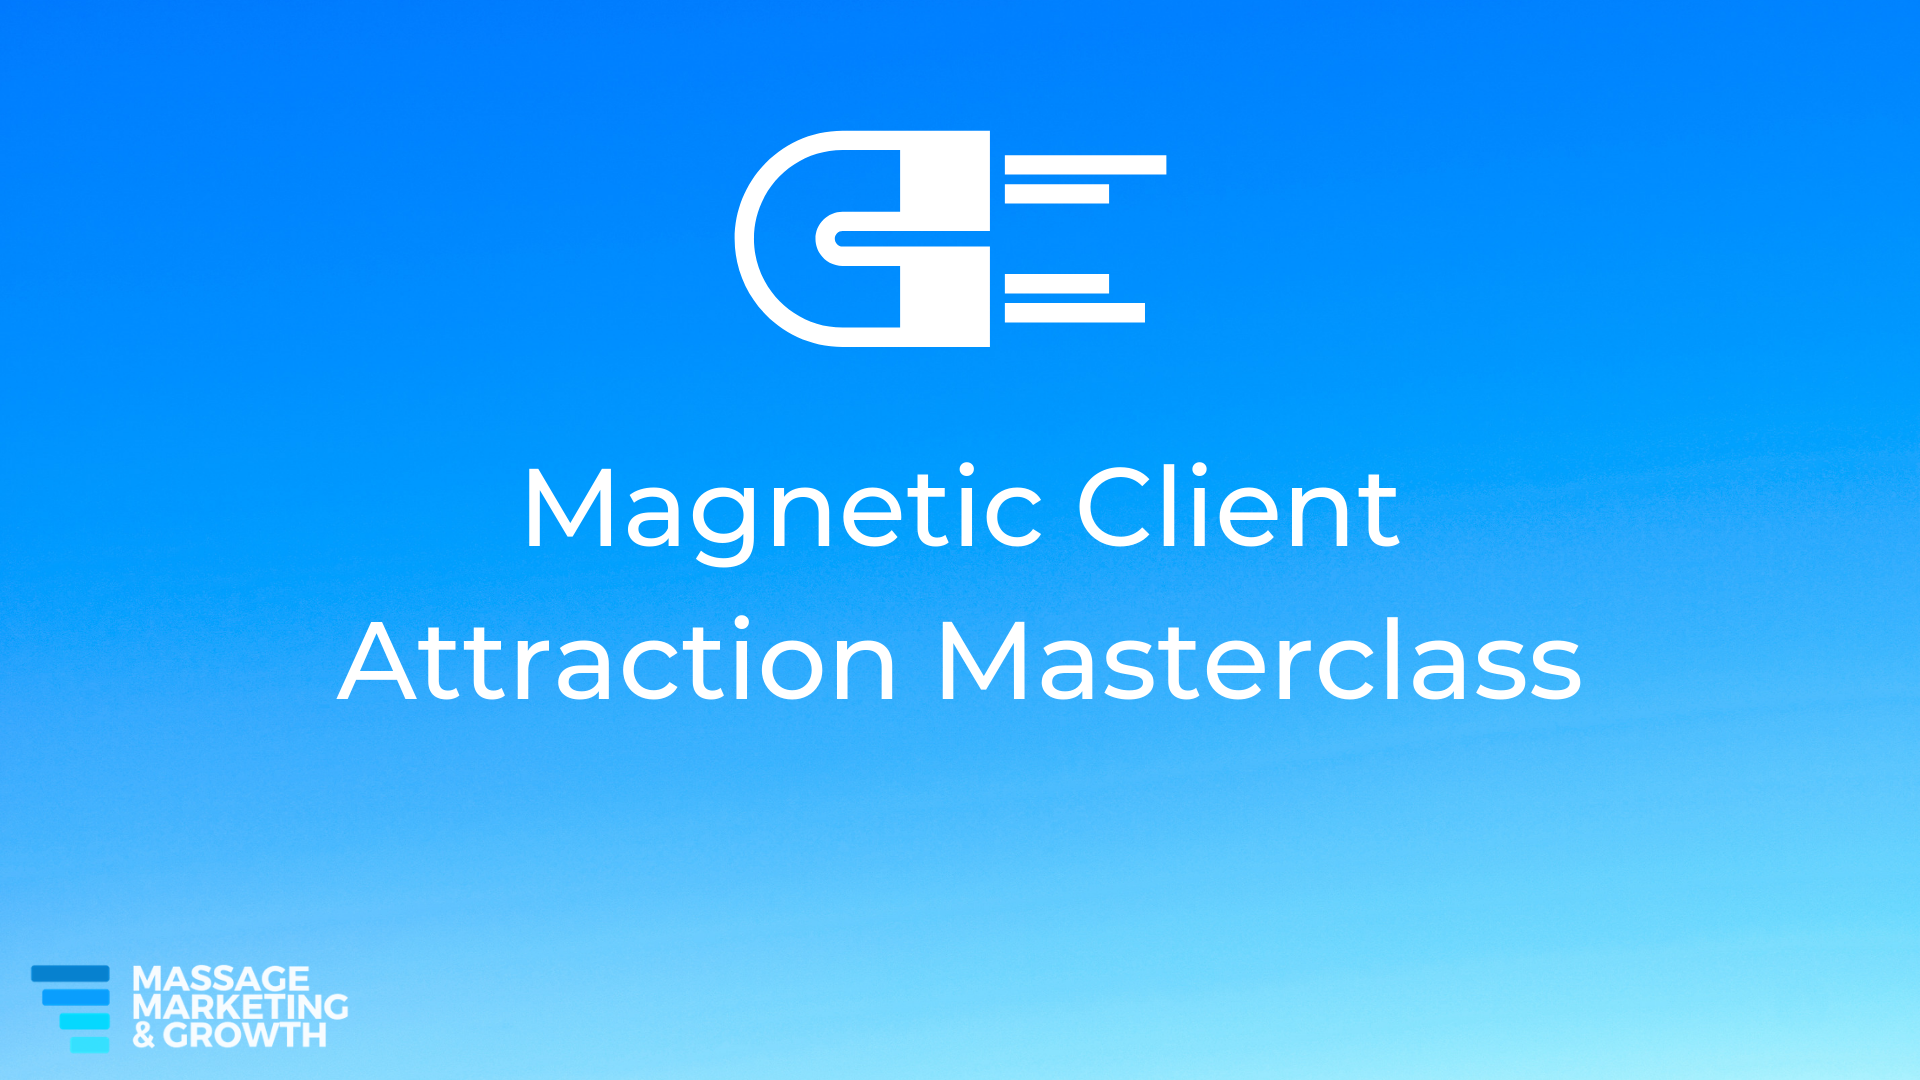 Magnetic Client Attraction Masterclass